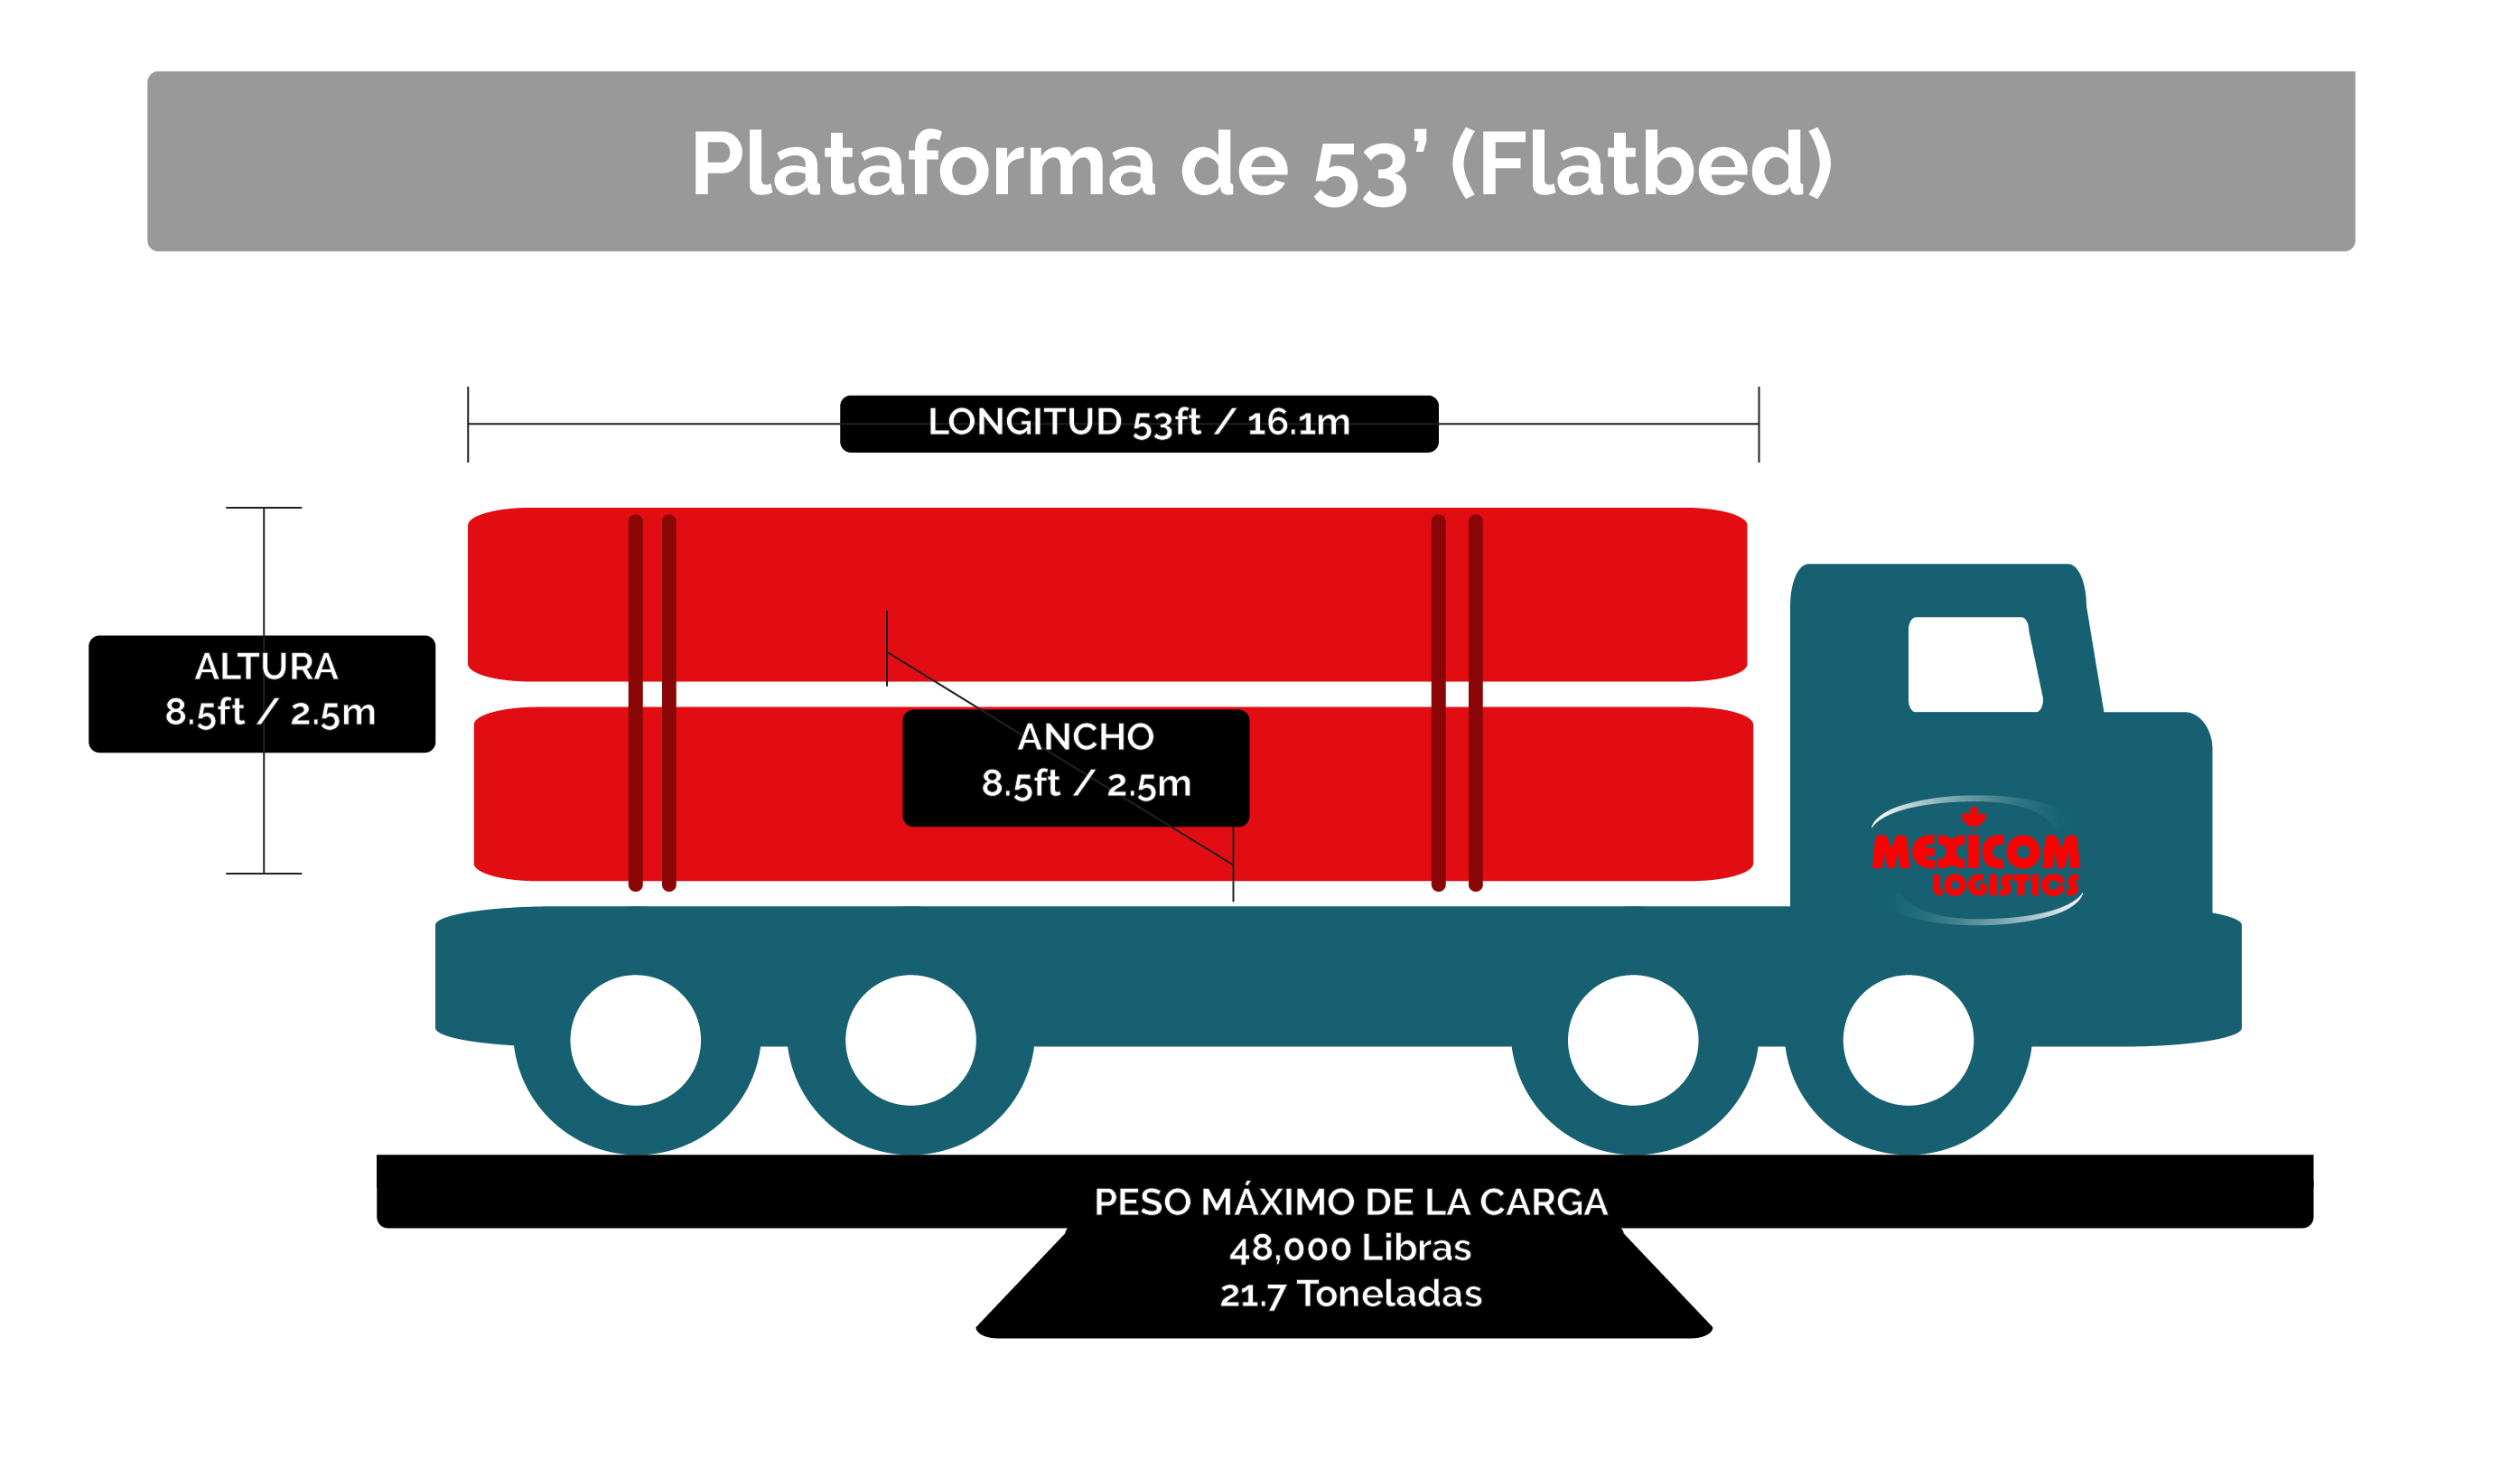 altura_ancho_largo_flatbed_53_pies